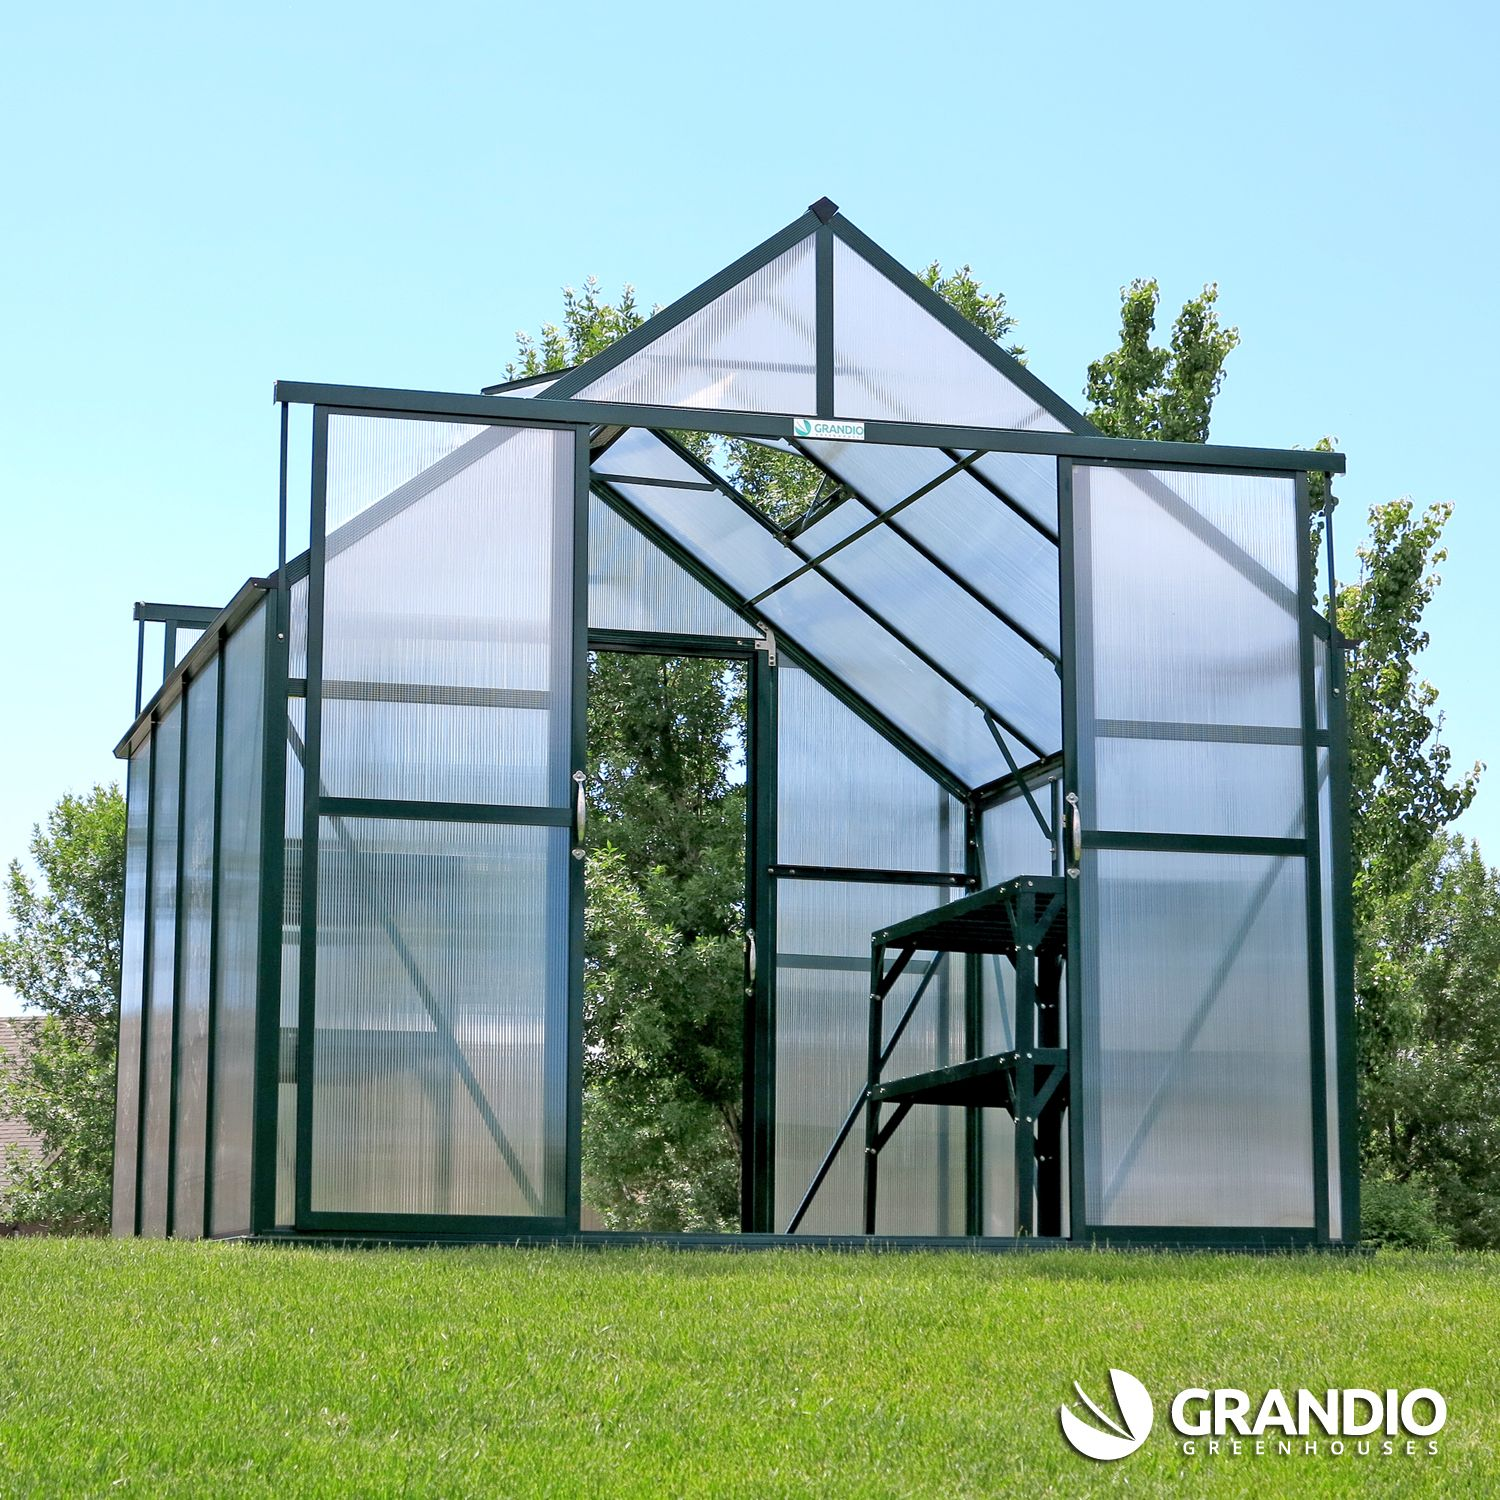 Grandio Ascent Greenhouse With Back Door Conversion Kit To Assist With Cooling And Ventilation Or For Easy Walk Thru Access With Images Greenhouse Back Doors Cool Stuff